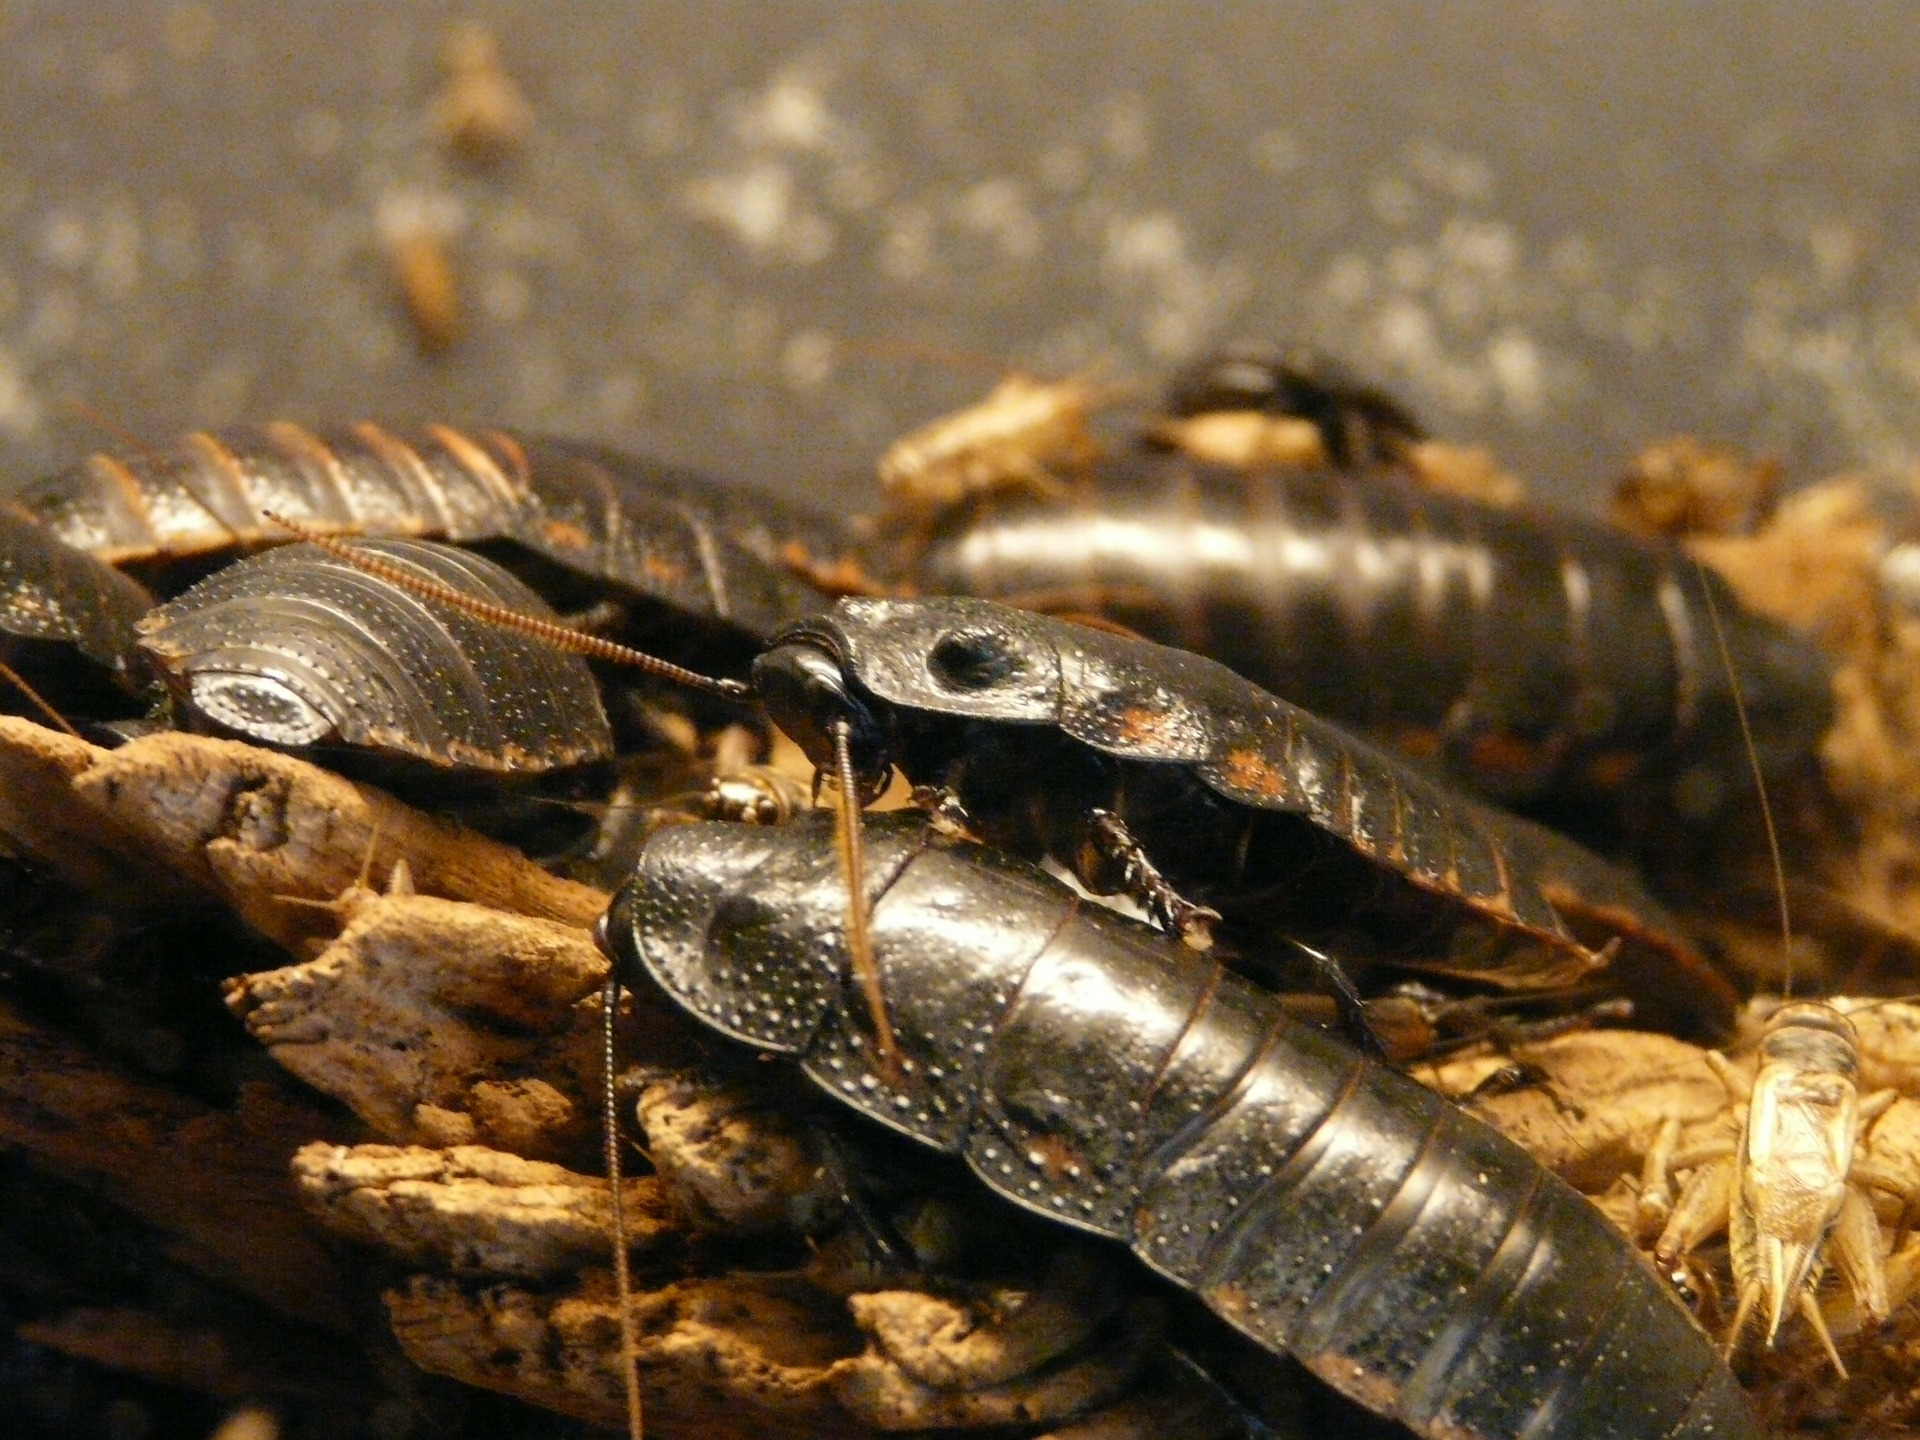 giant-hissing-cockroach-77069_1920.jpg